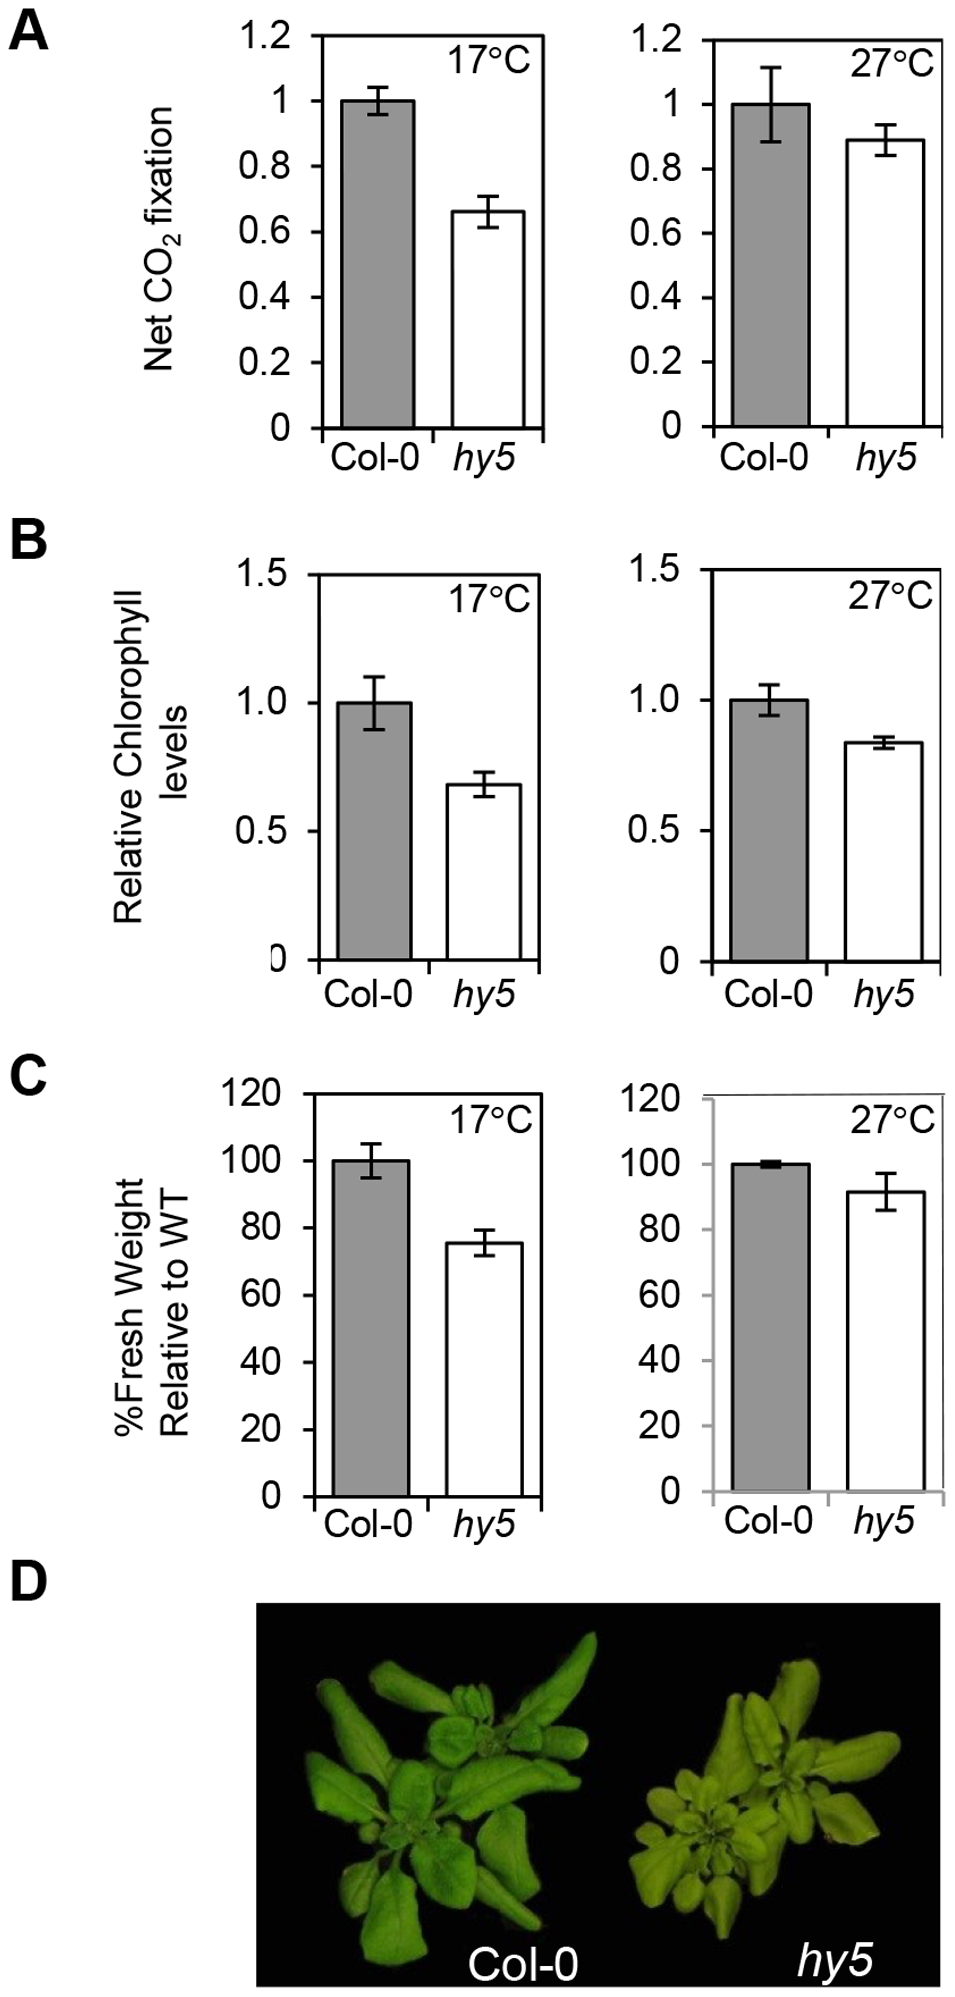 HY5 modulates photosynthetic acclimation efficiency at low temperatures.